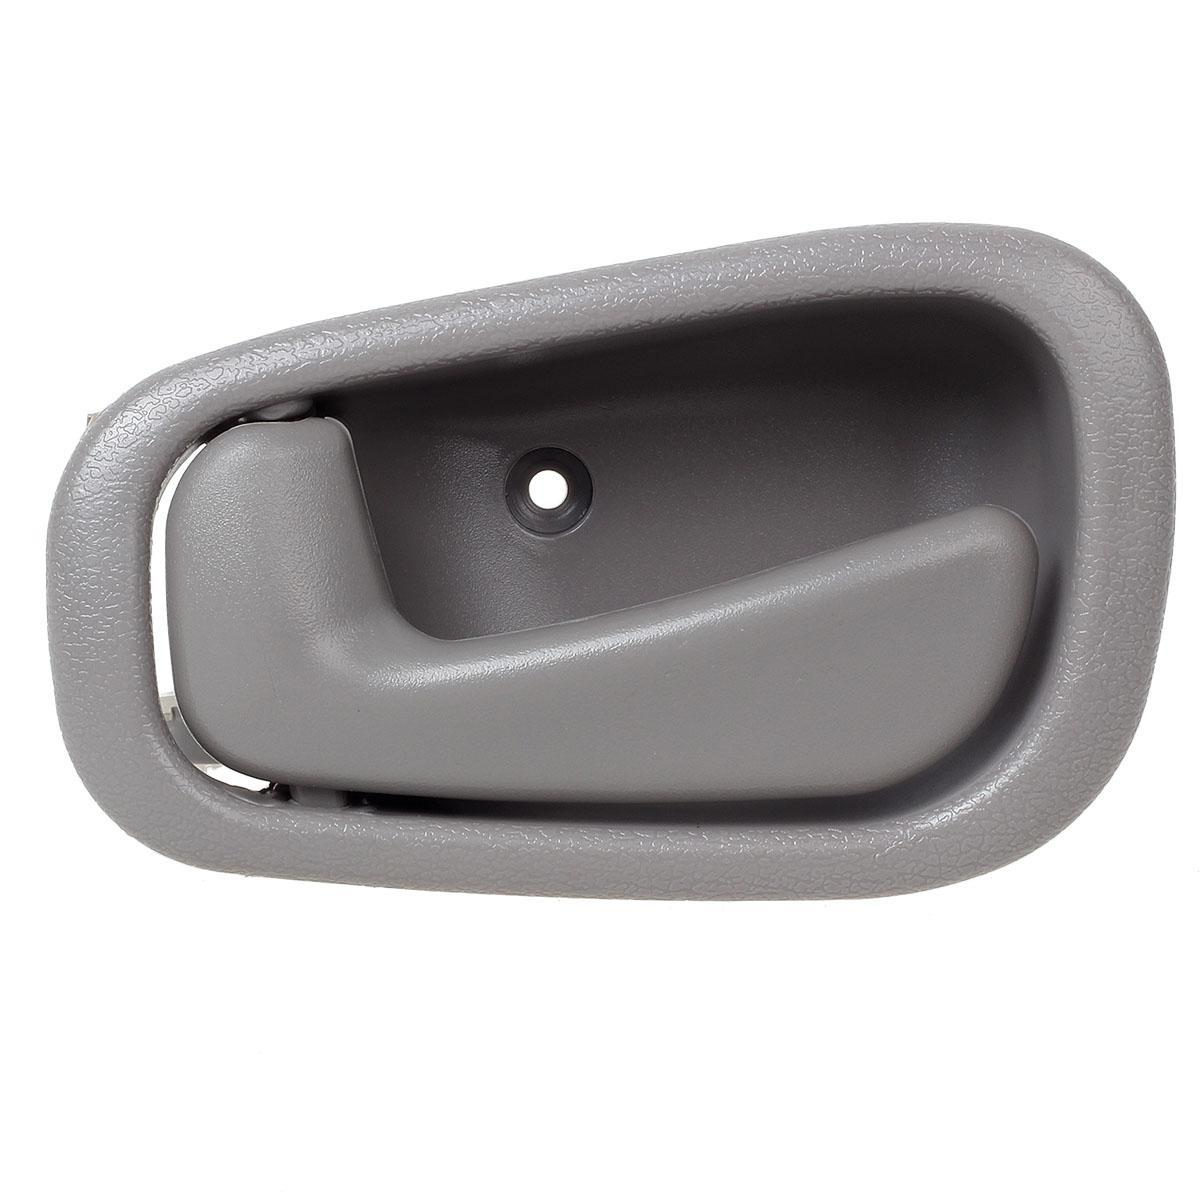 For 1998 2002 toyota corolla gray interior door handle Toyota corolla door handle interior